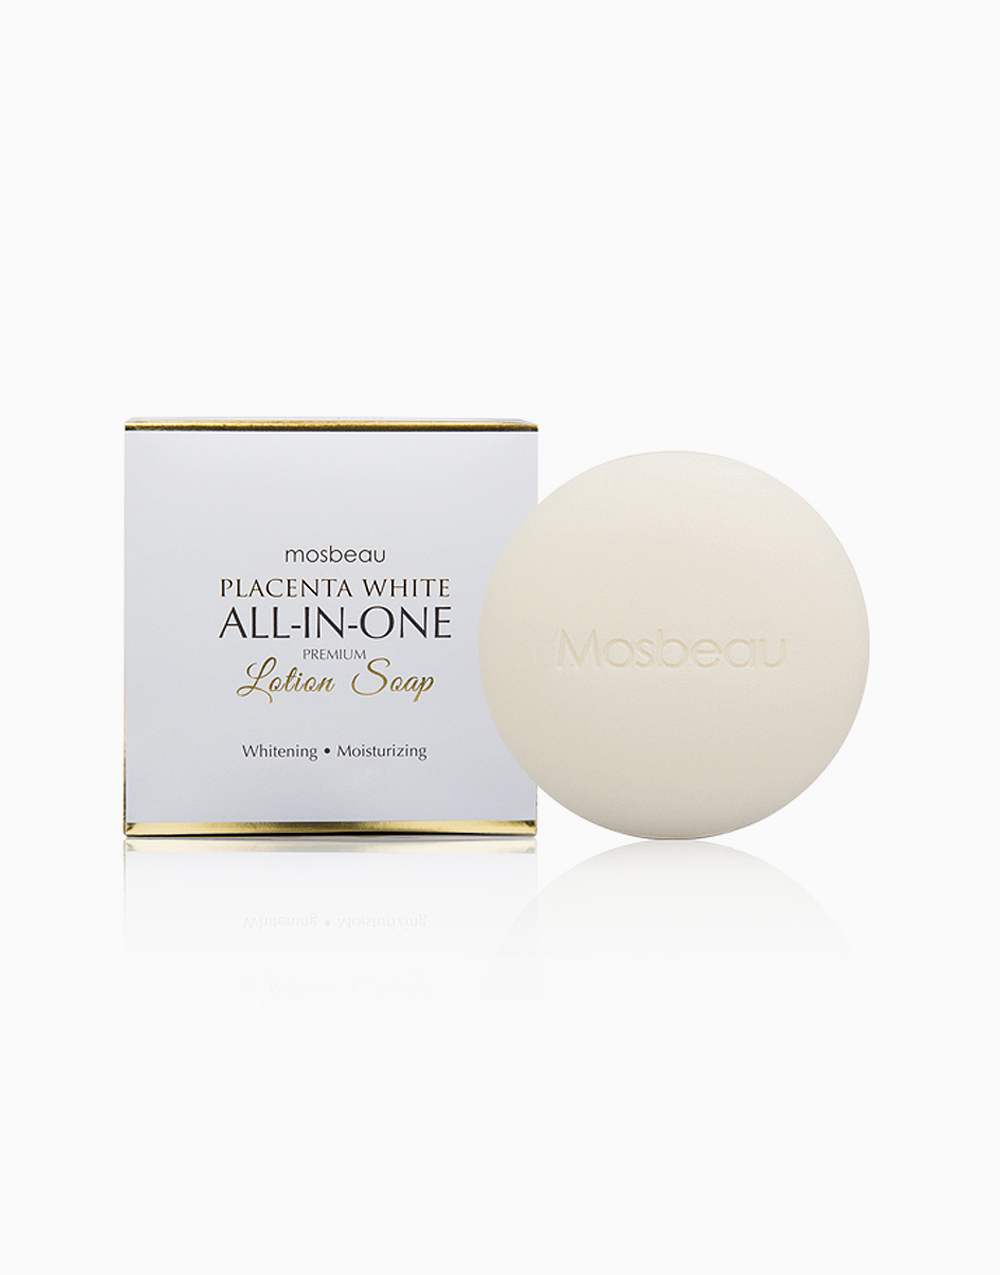 Placenta White All-in-One Premium Lotion Soap by Mosbeau